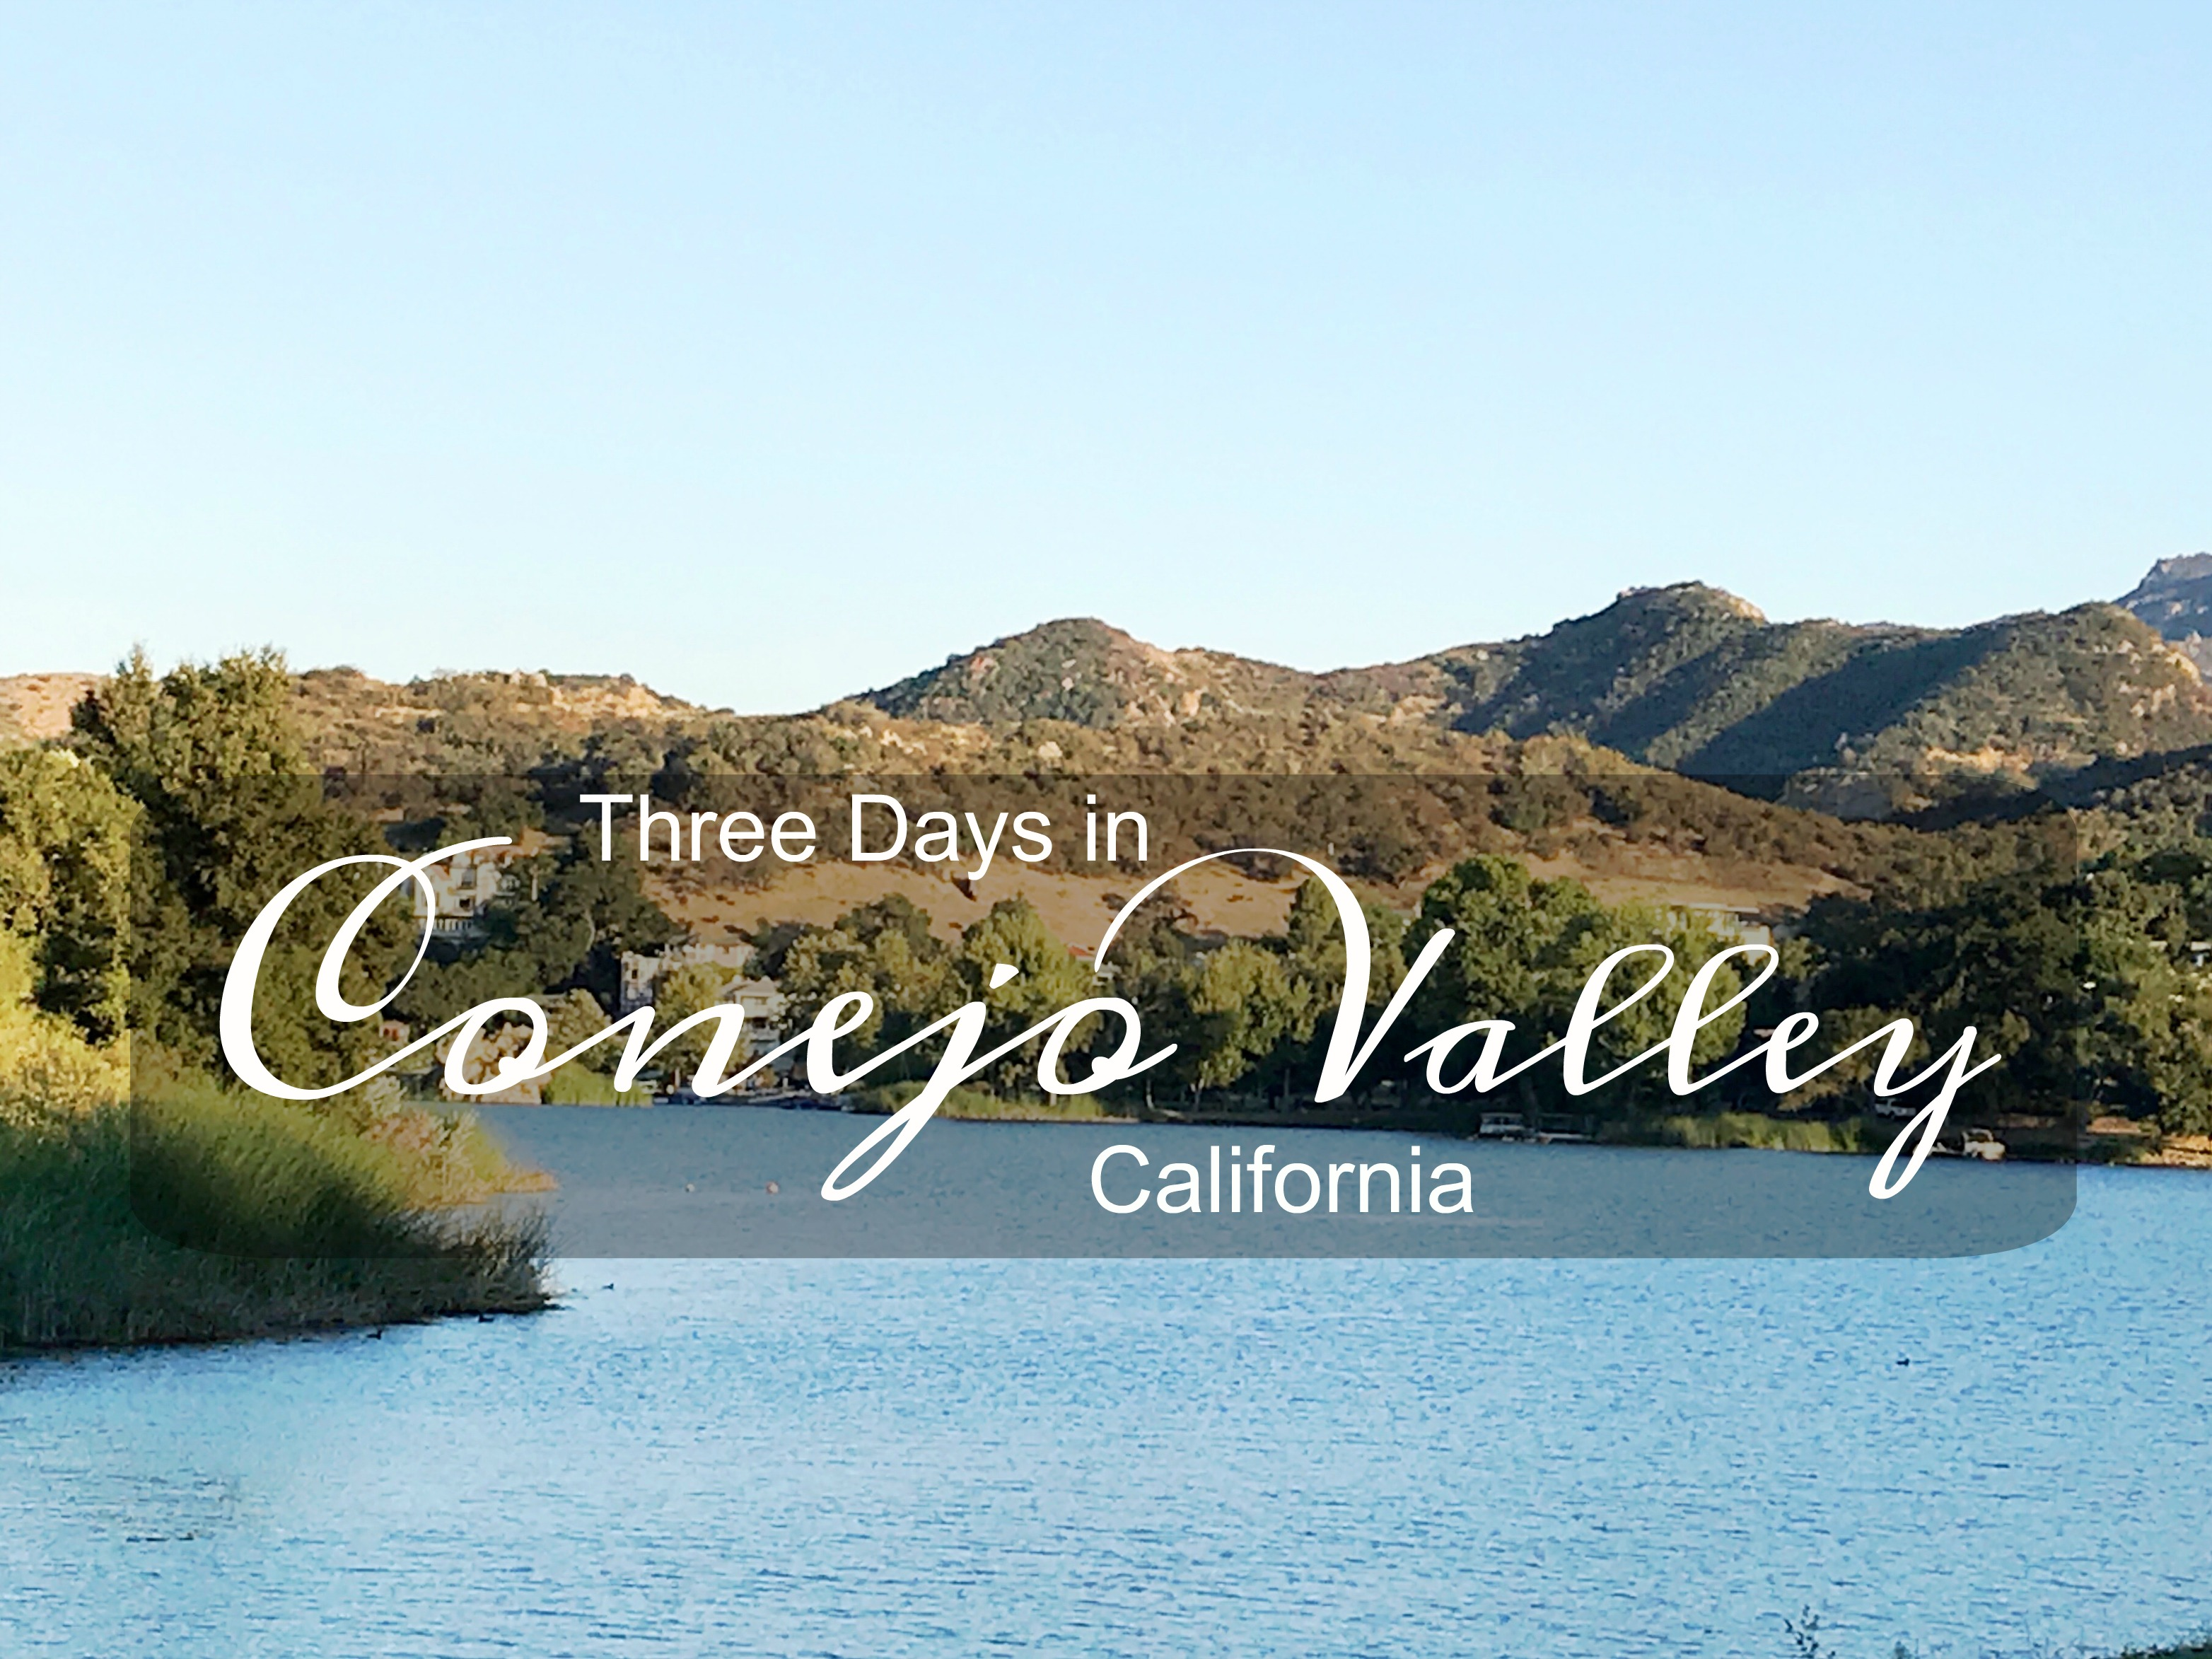 Three Days in Conejo Valley